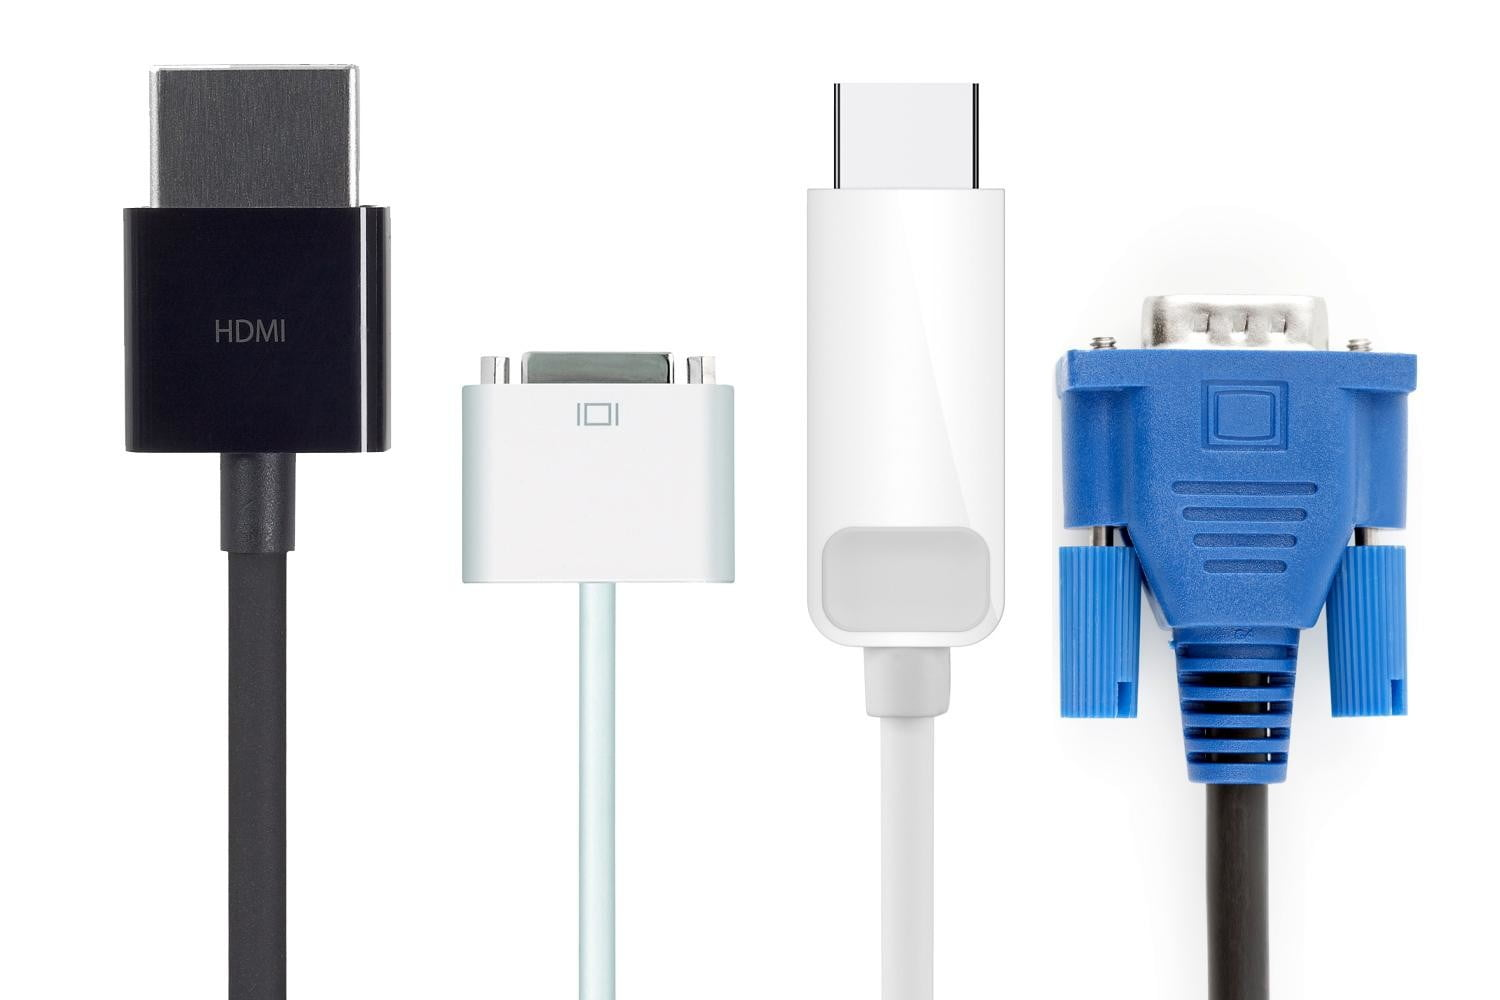 Hdmi Vs Displayport Vs Dvi Vs Vga Which One 11